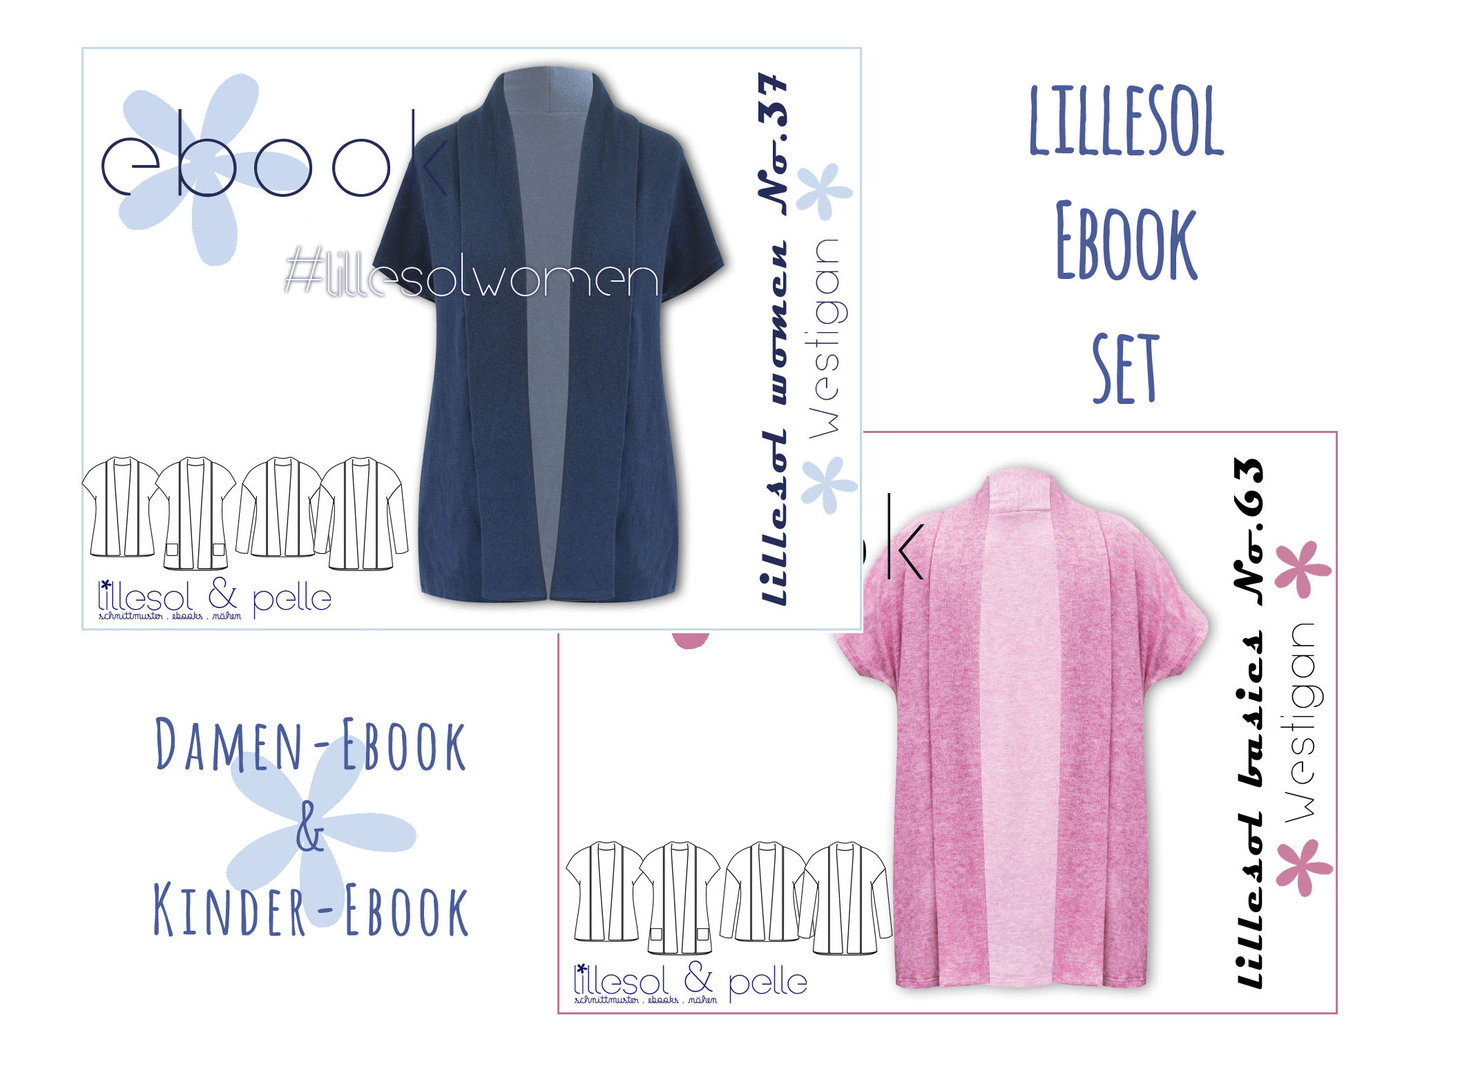 lillesol ebook set basics No.63 und women No.37 * mit Video-Nähanleitung *